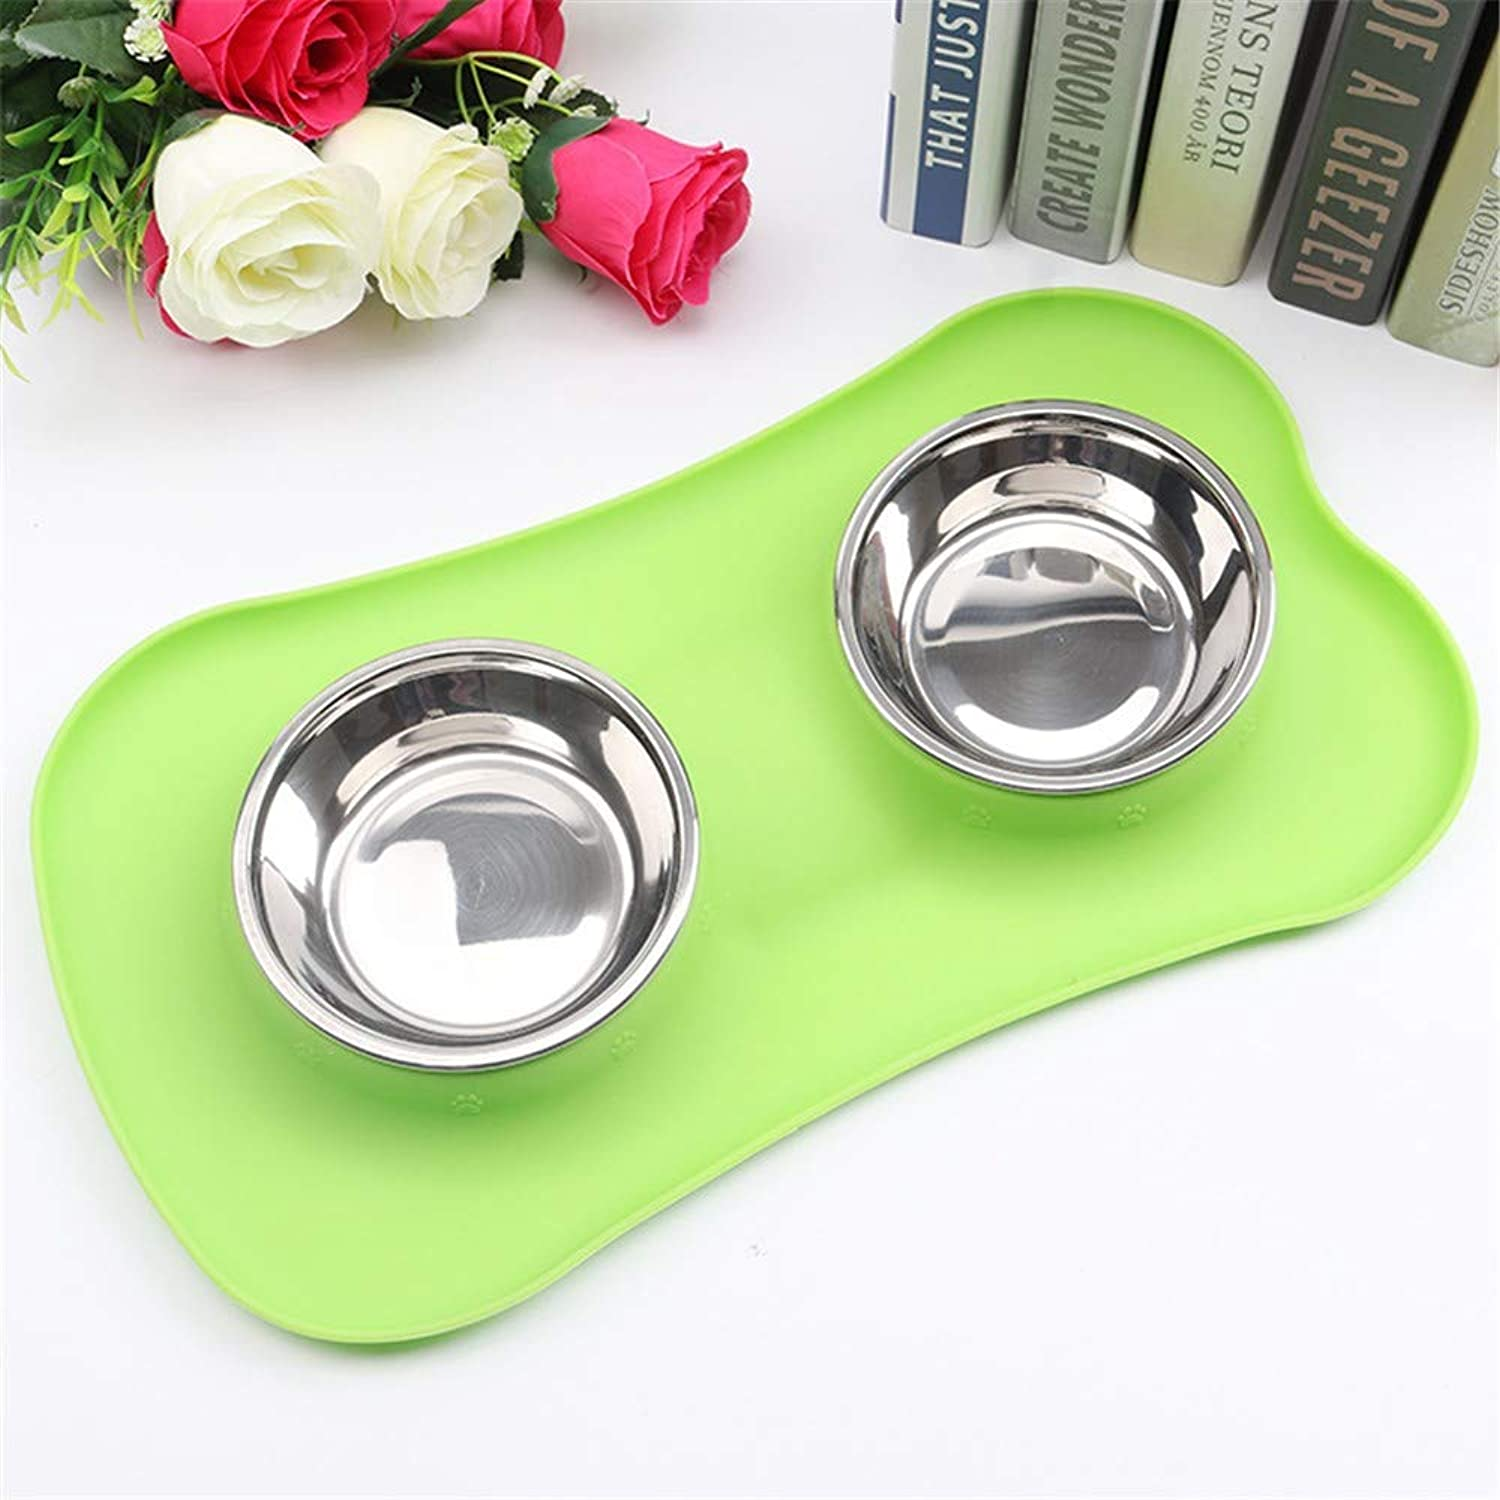 PeachBlossomSource New Creative Sunscreen Silicone Pet Double Bowl Environmental Predection Silicone Antiskid Tableware Dog Bowl,Green,S